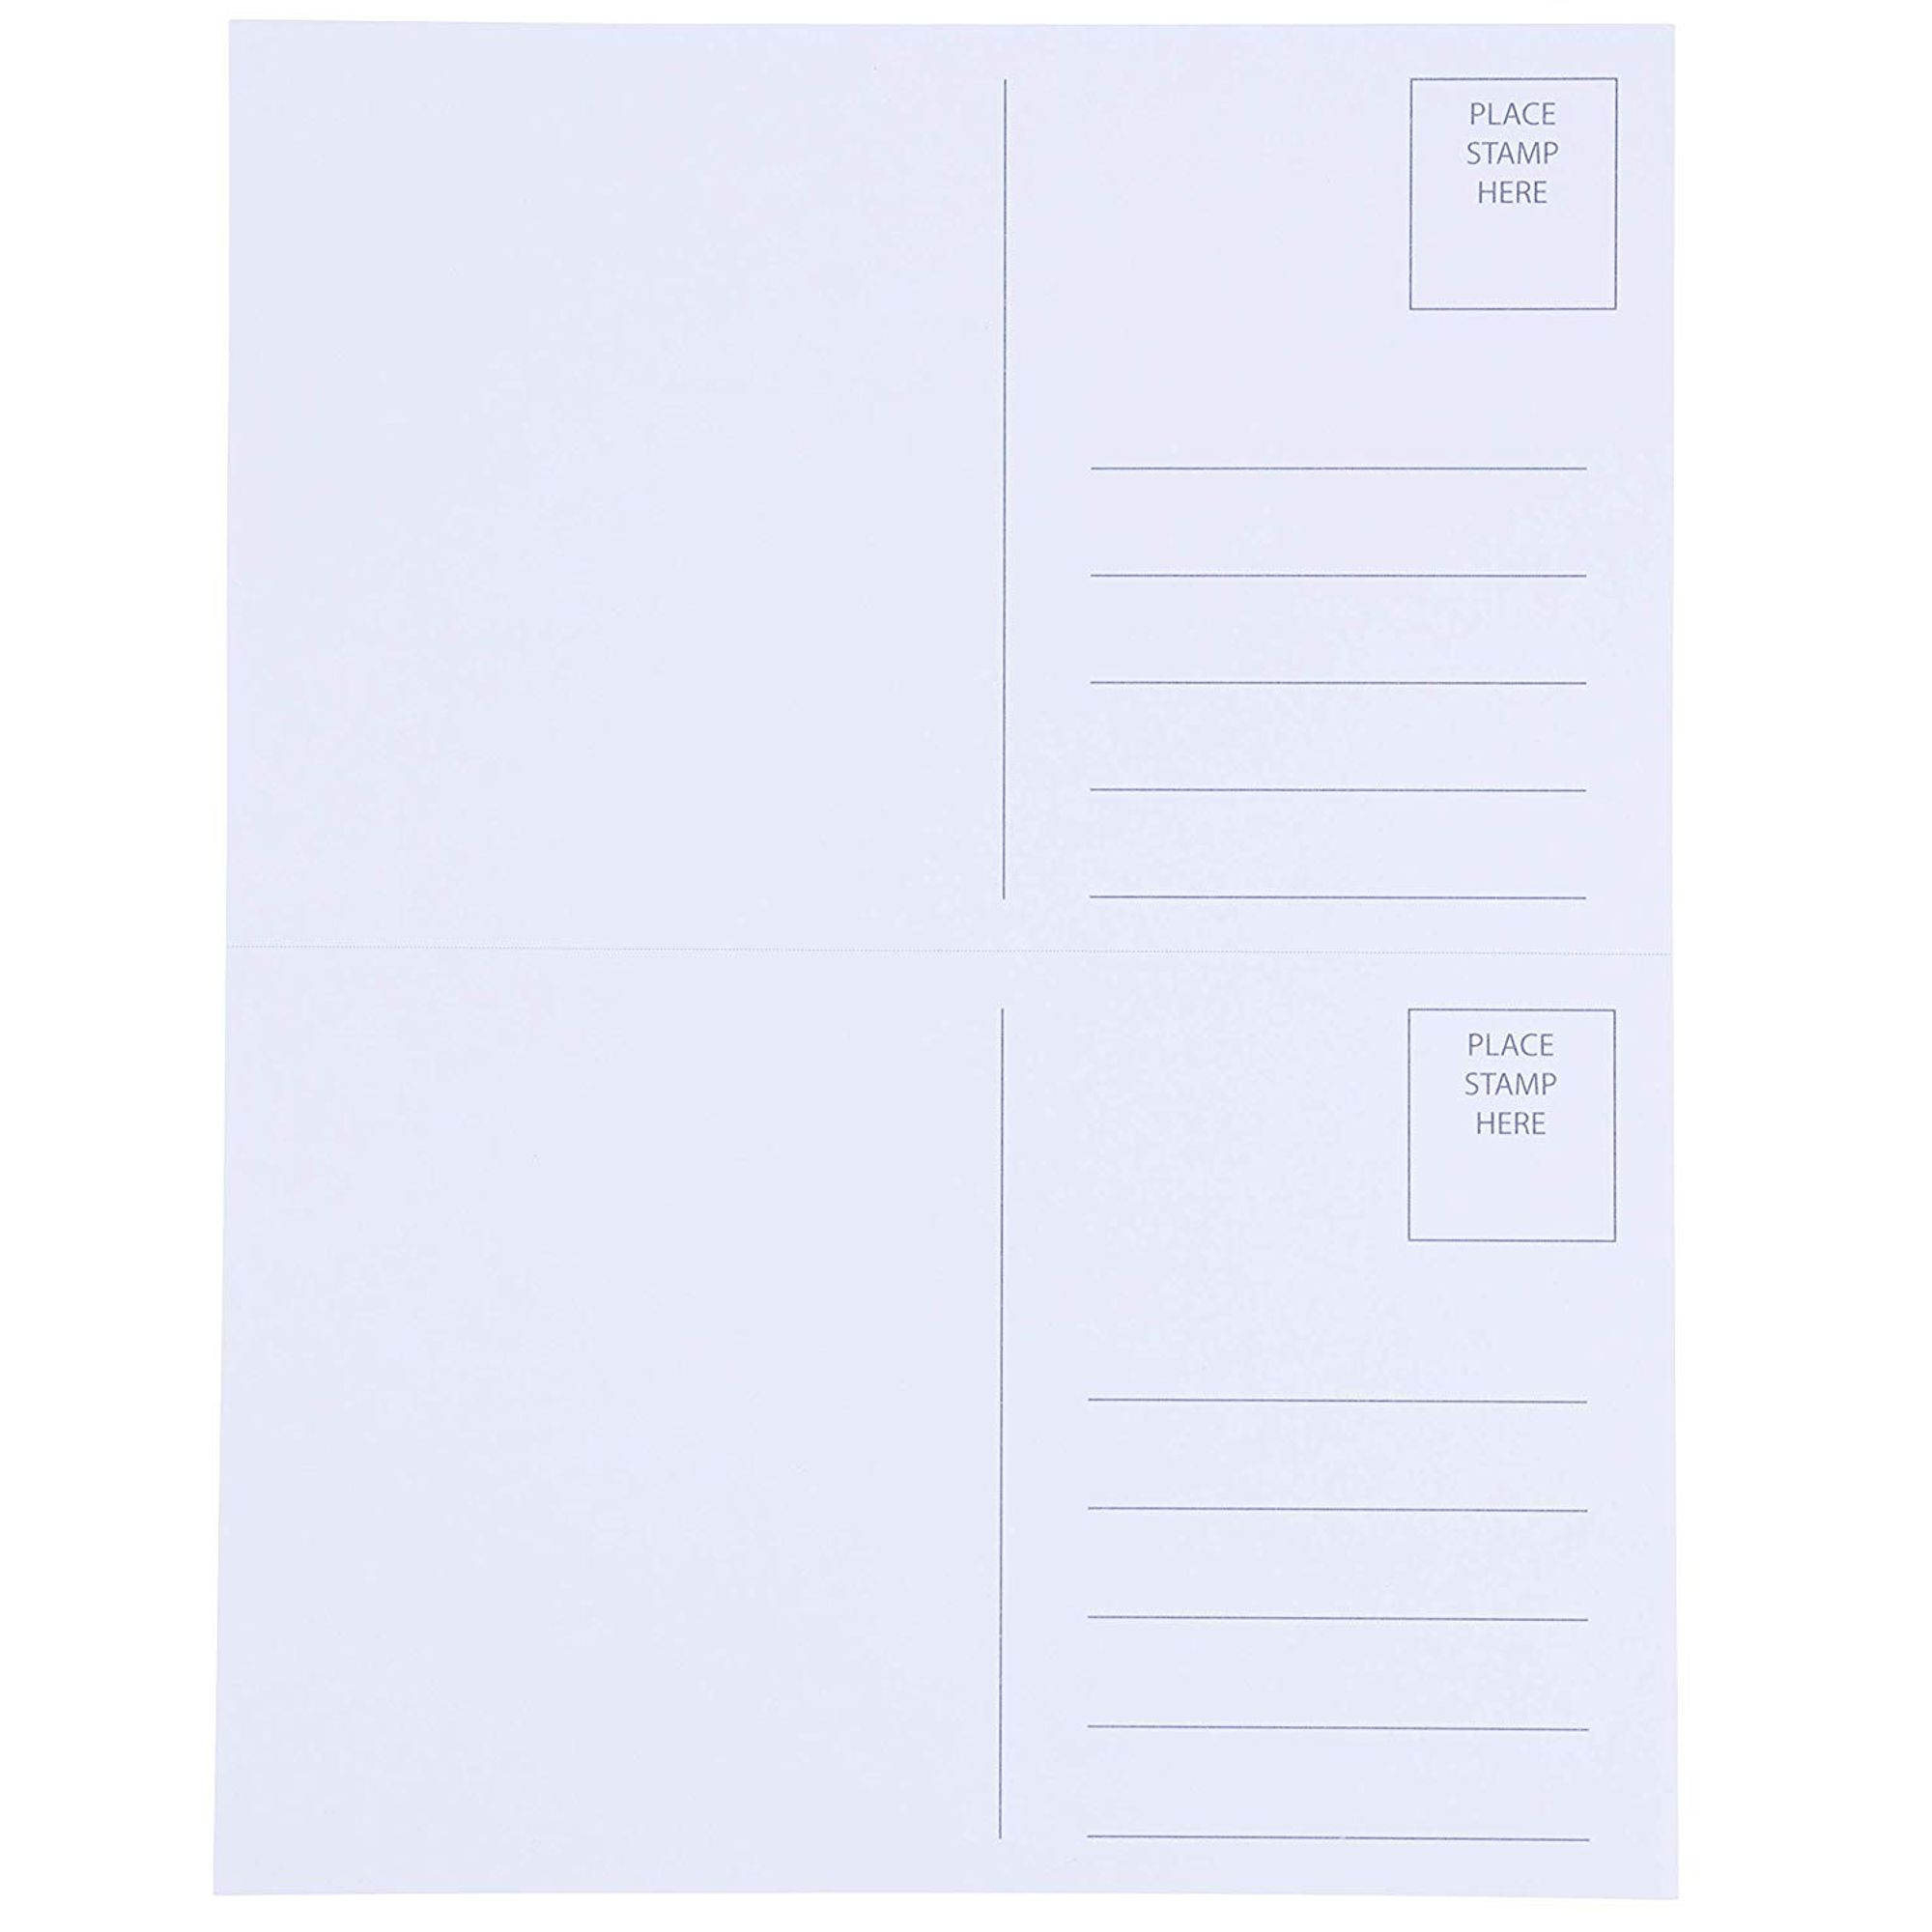 photo about Printable Postcard referred to as Blank Postcards - 100-Sheet 200-Playing cards Printable Postcards, 2-Up Perforated Laser and Inkjet Printer Postcards, Self Mailer Mailing Aspect Postcards,